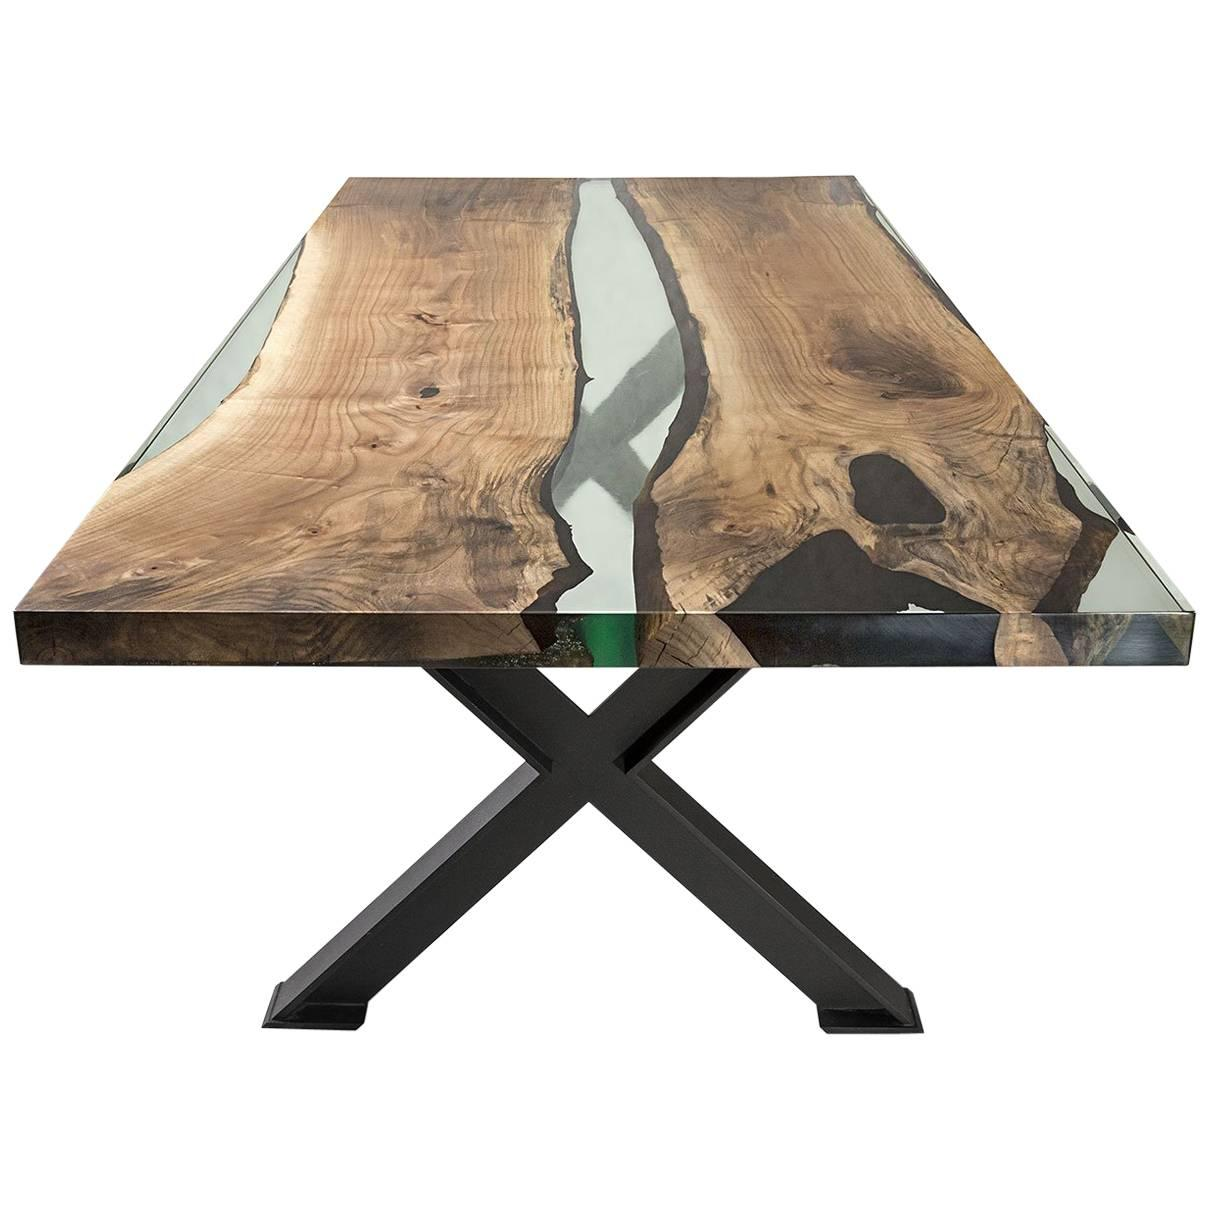 Hudson 250 Epoxy Resin Table With X Base For Sale At 1stdibs